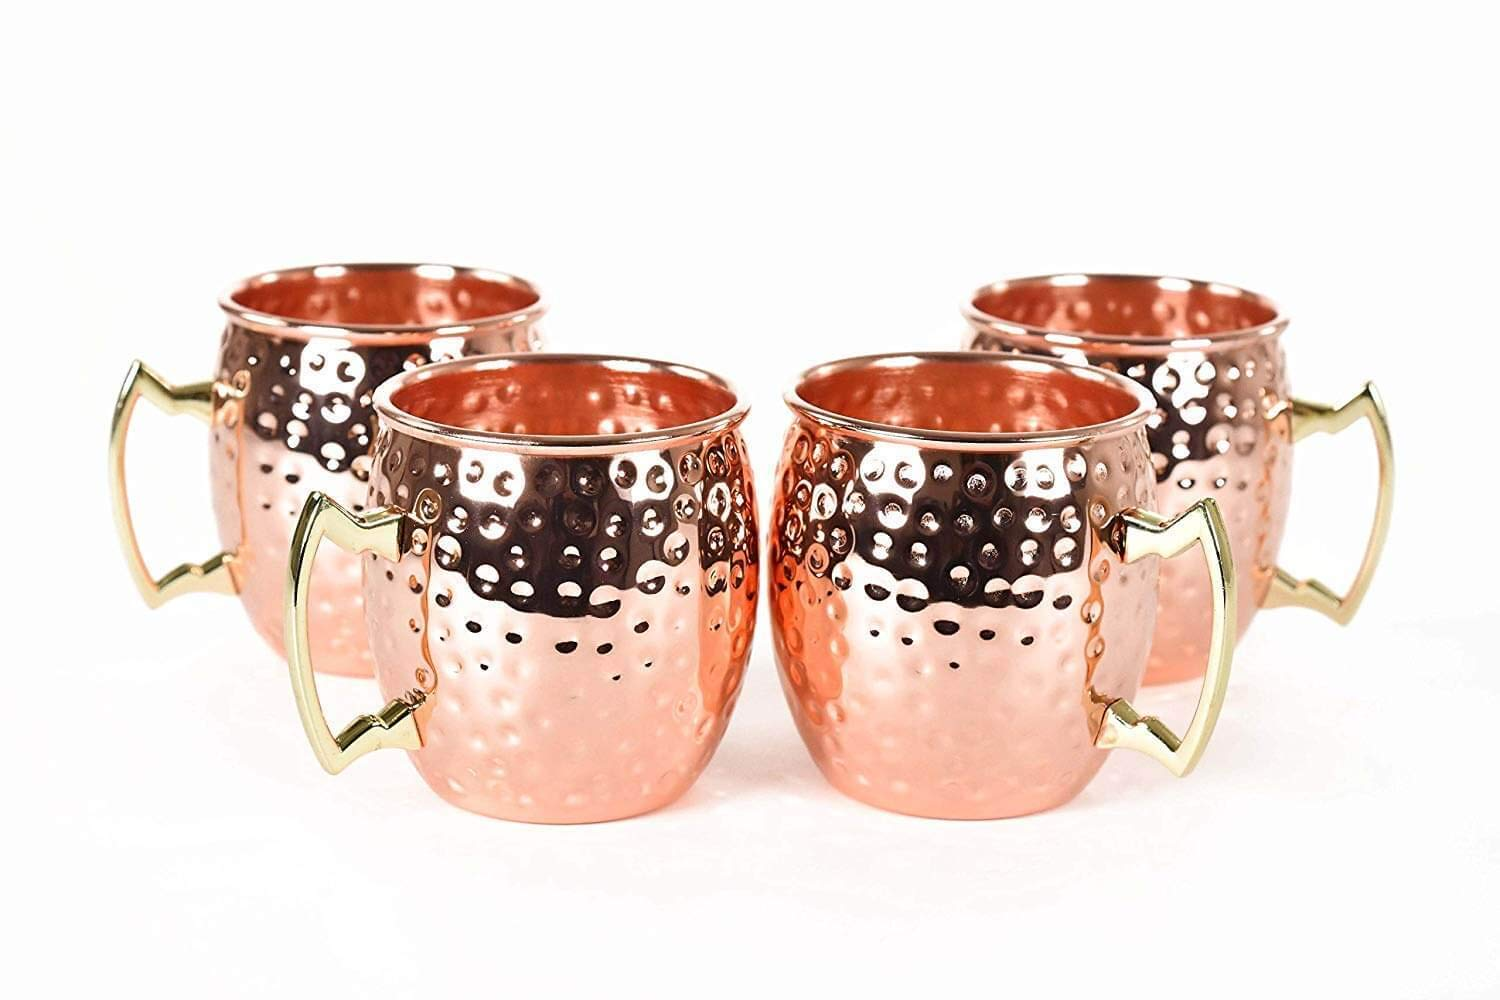 RV Hammered Copper Moscow Mule Mug with Brass Handle, 18oz by OLIA DESIGN